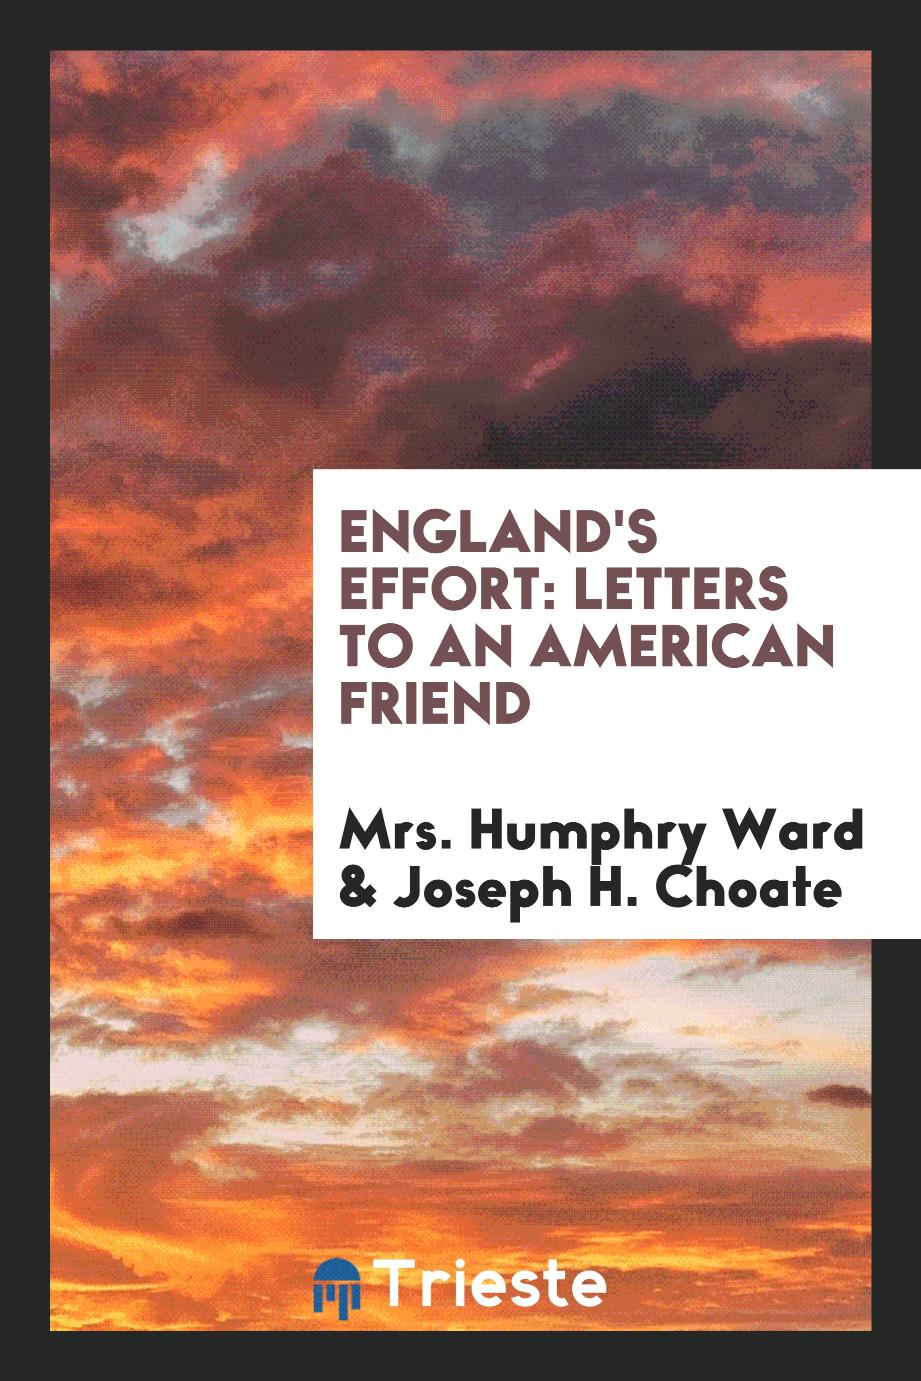 England's Effort: Letters to an American Friend